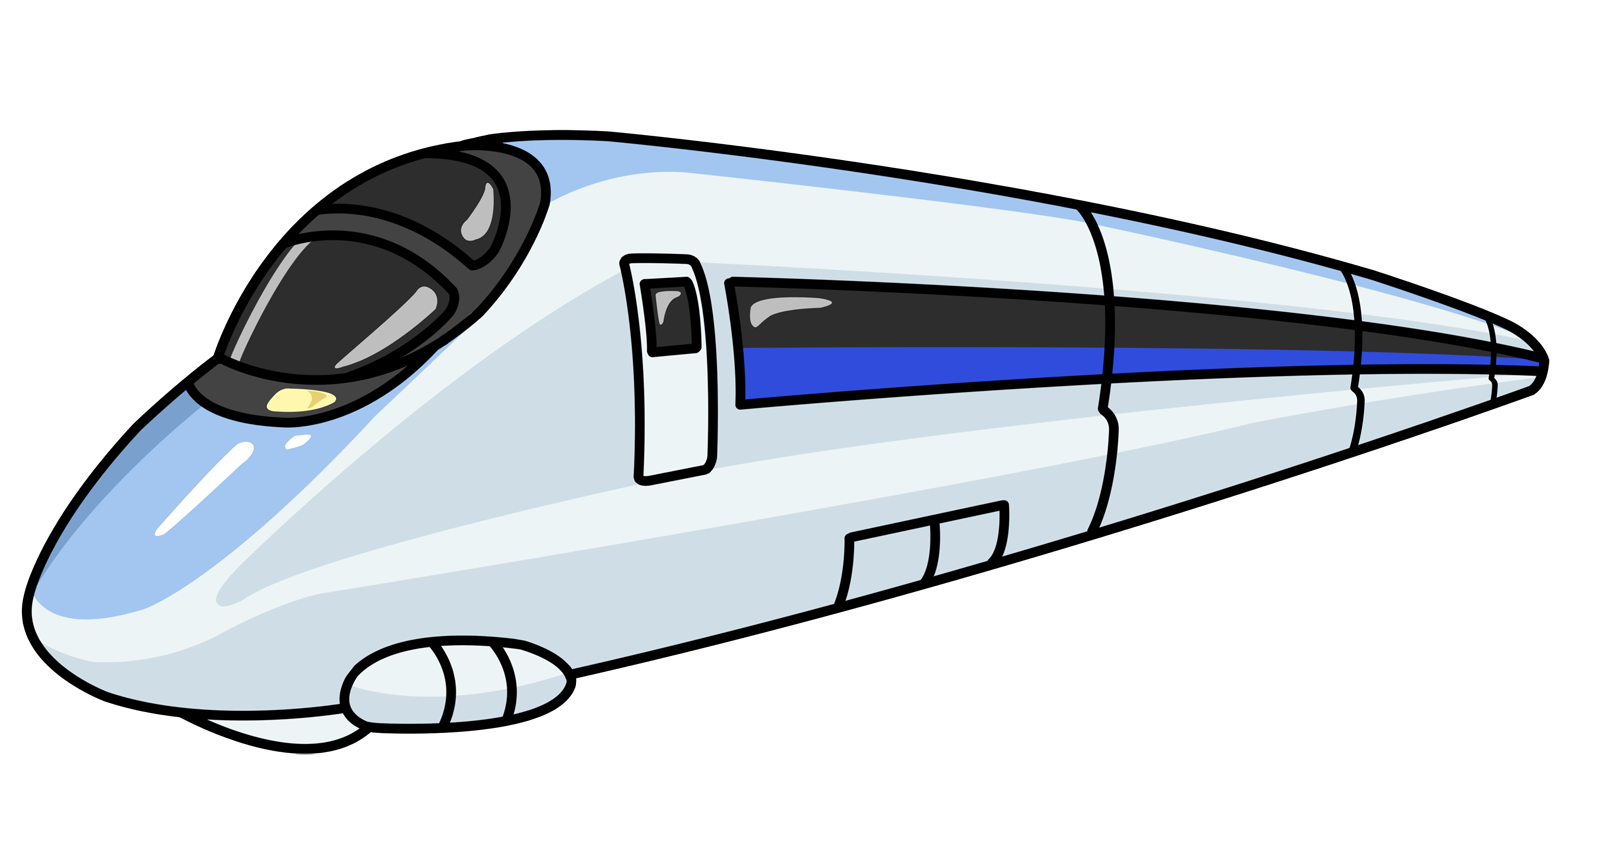 Fast clipart speed. Bullet train